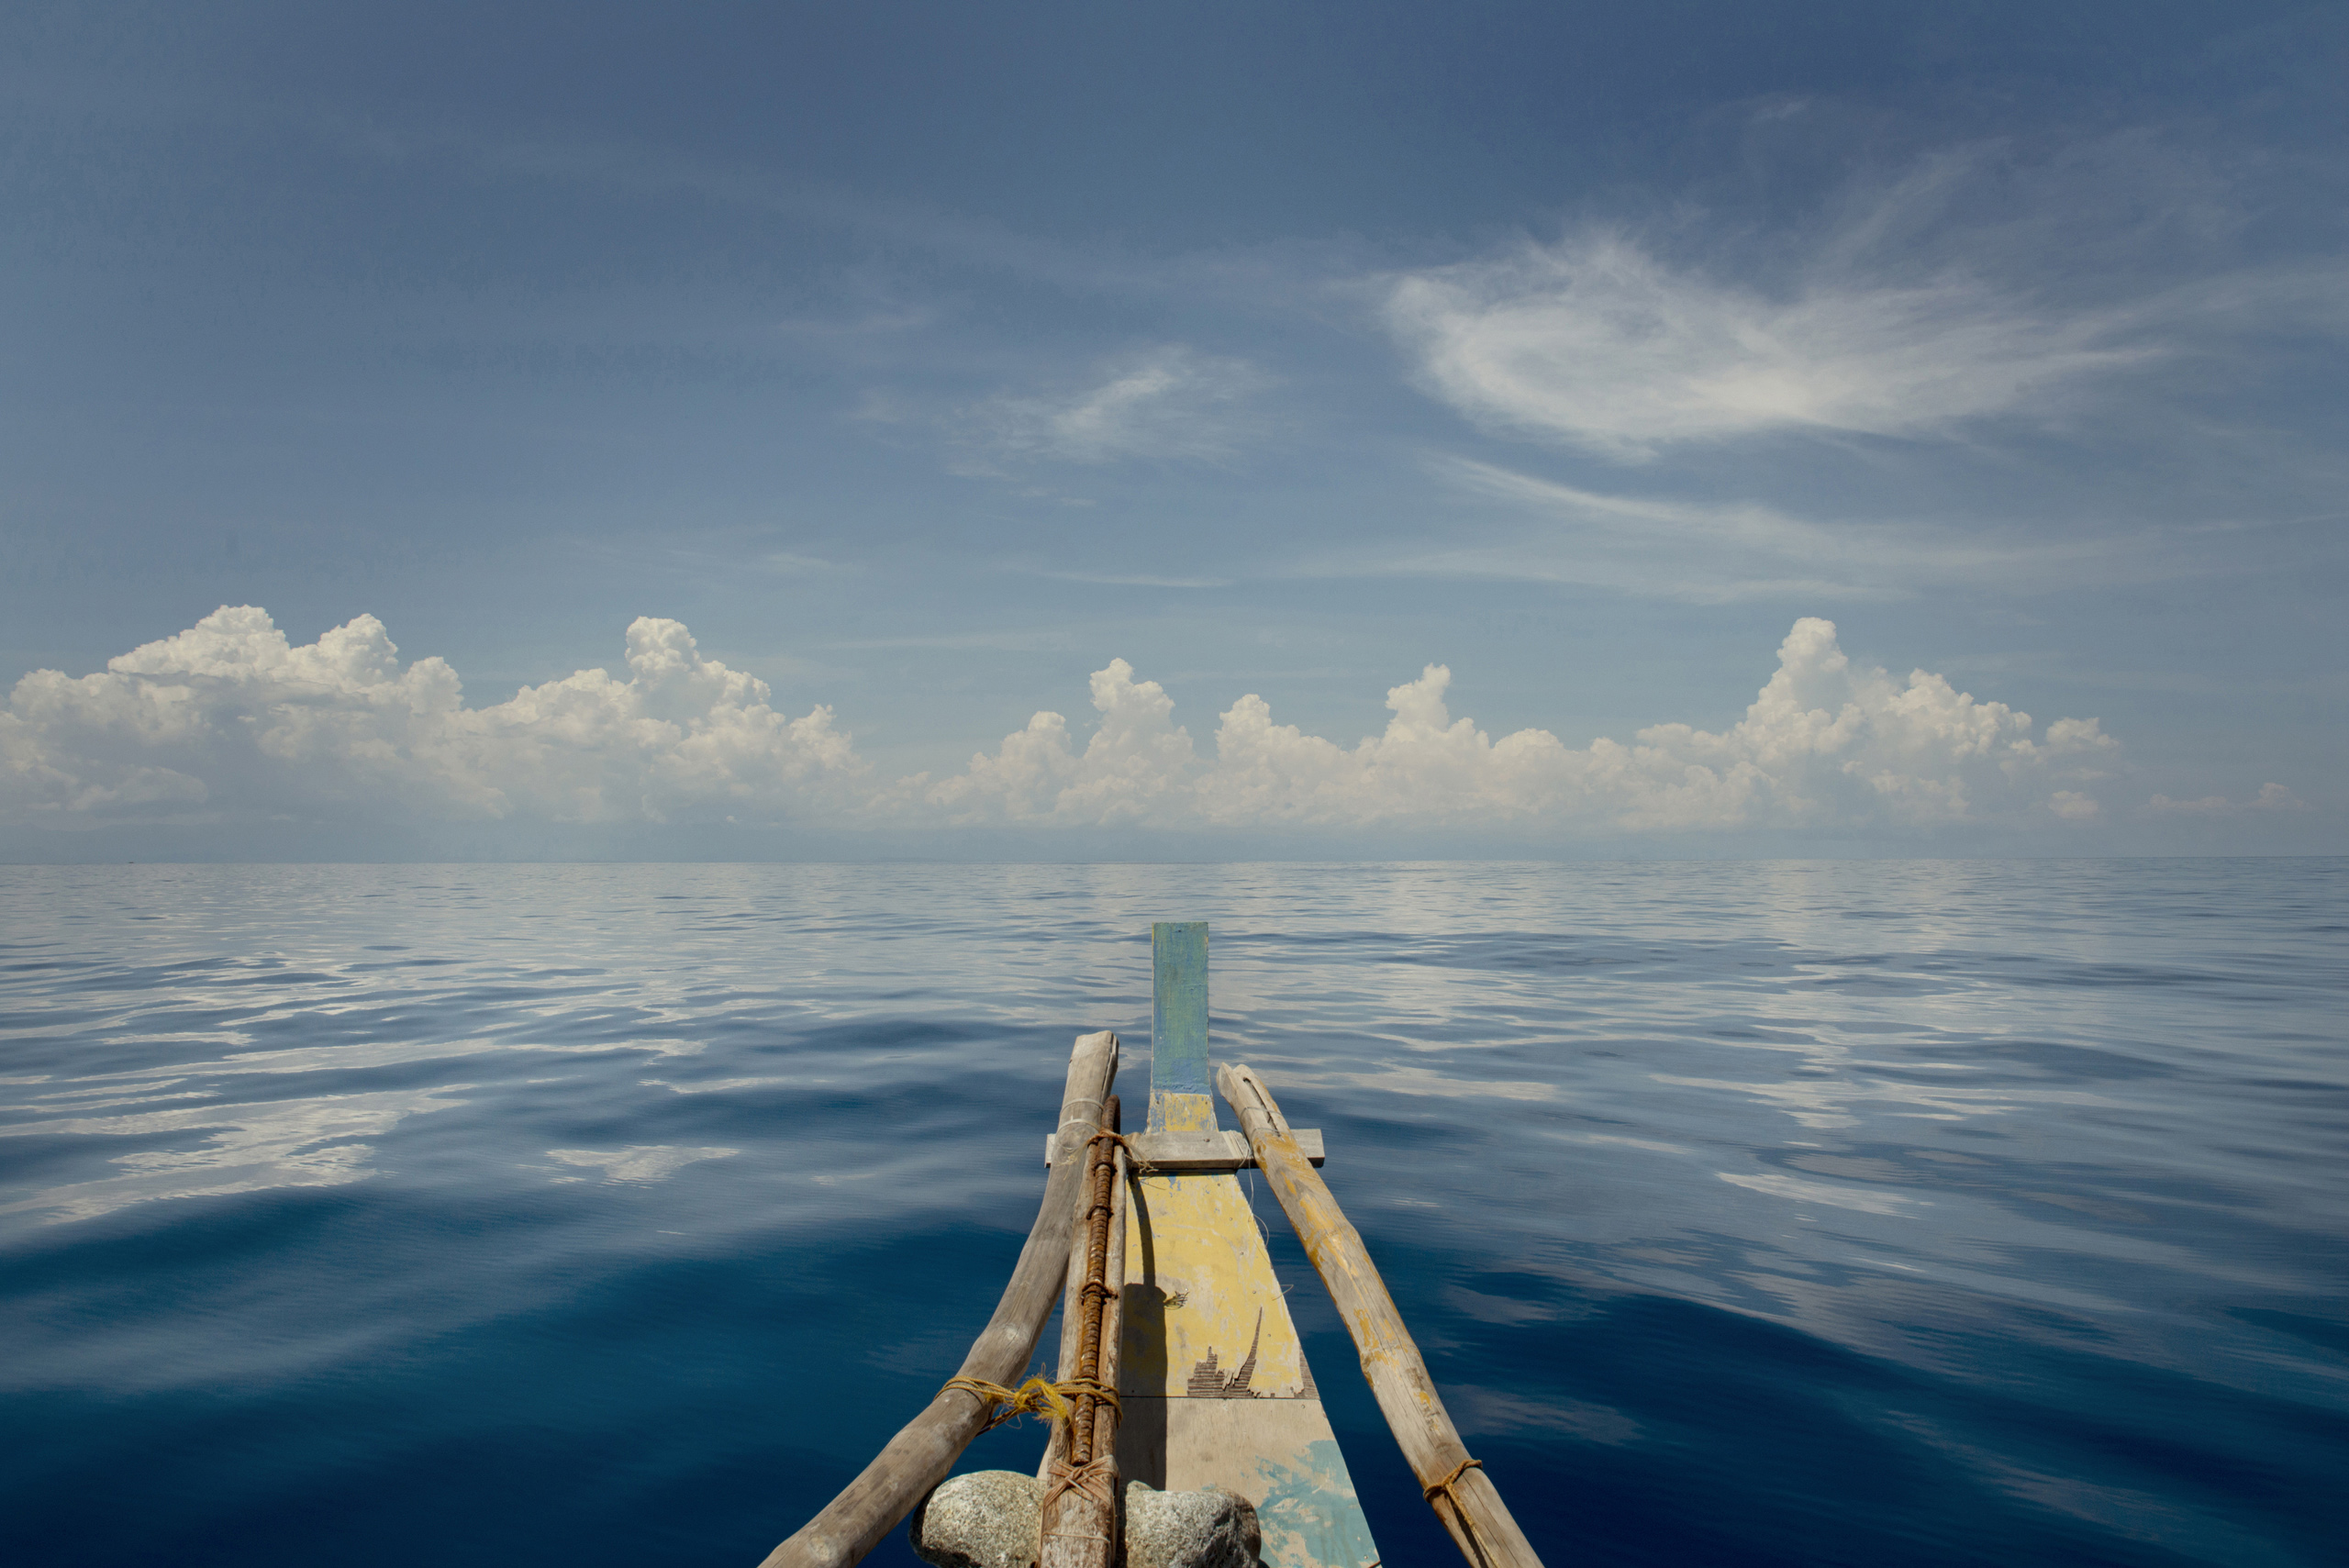 The  Wonder Boy  a 36-foot bamboo outrigger boat, on which TIME's East Asia bureau chief Hannah Beech and photographer Chiara Goia, made their voyage to the Spratly Islands in the South China Sea, May 10, 2016.From  Adrift in the South China Sea on a Boat Called 'Wonder Boy'